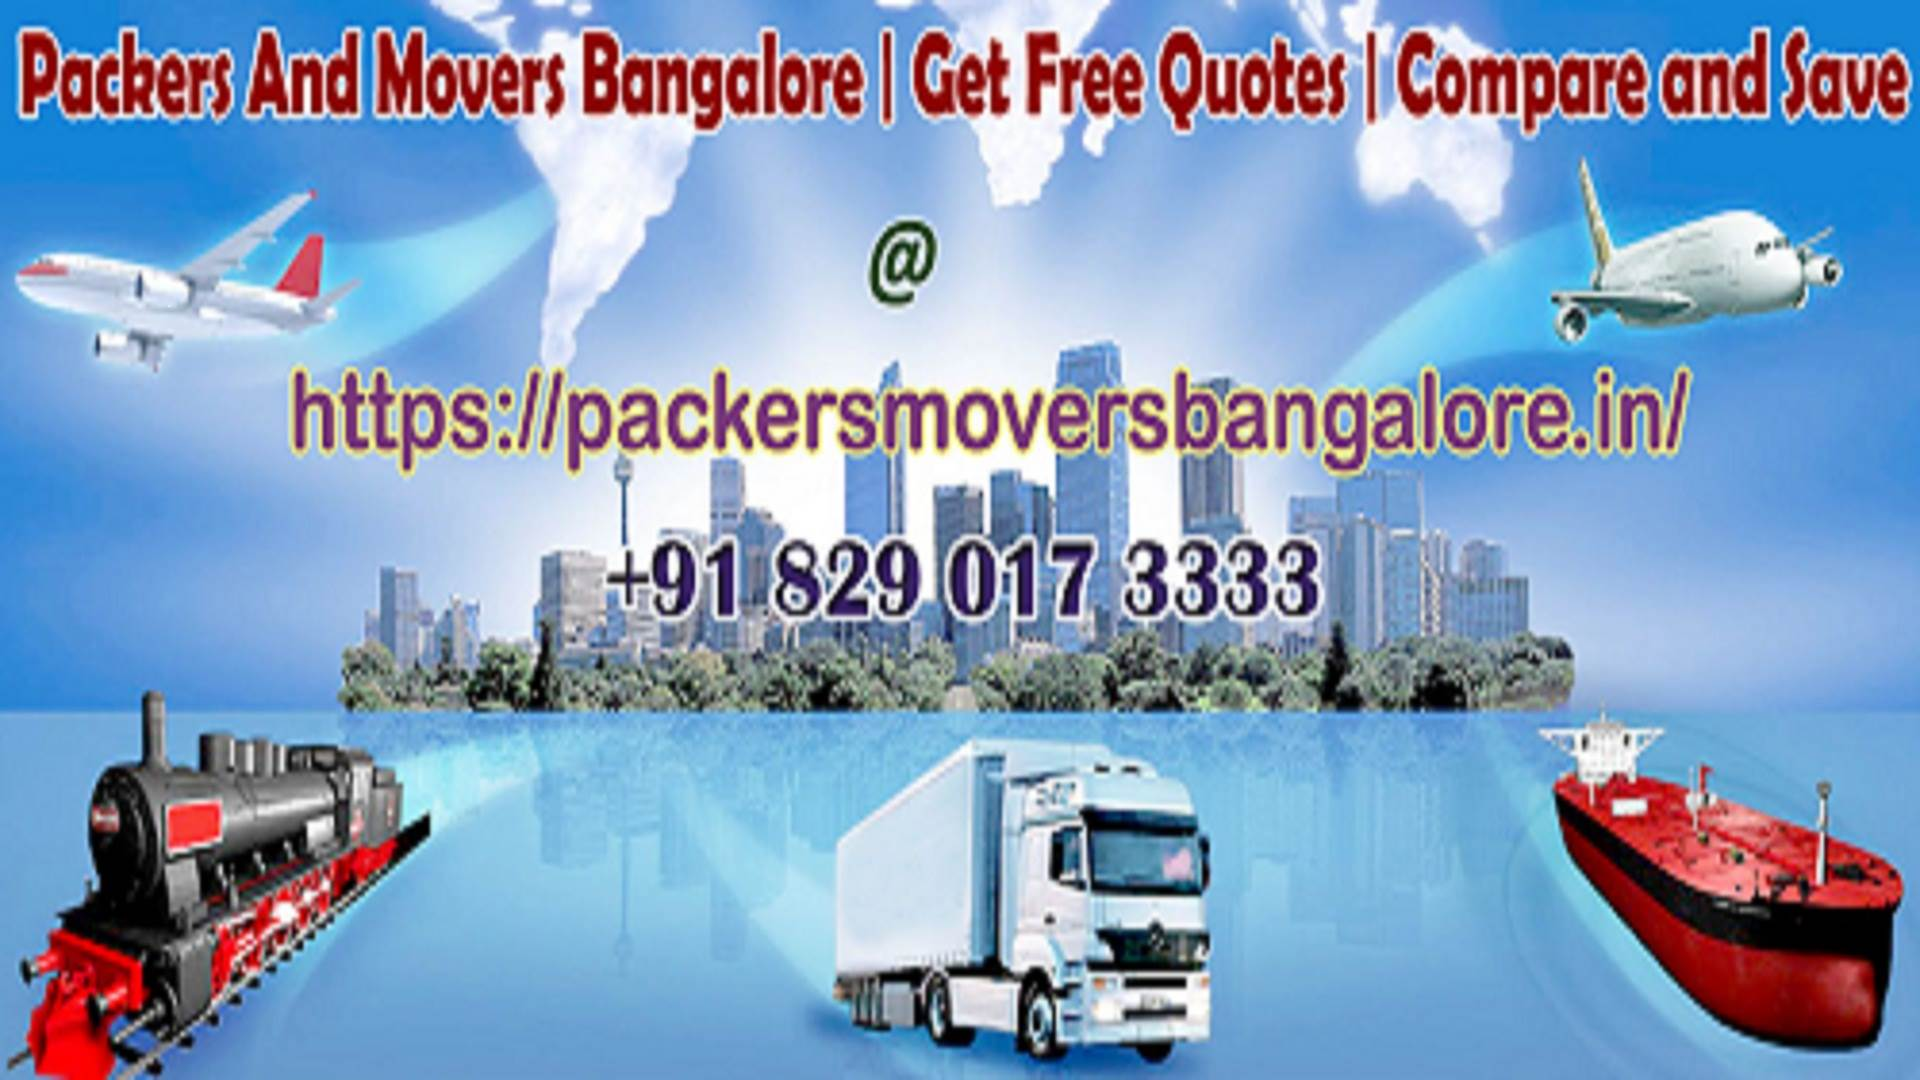 Packers And Movers Bangalore | Get Free Quotes DikshaMA